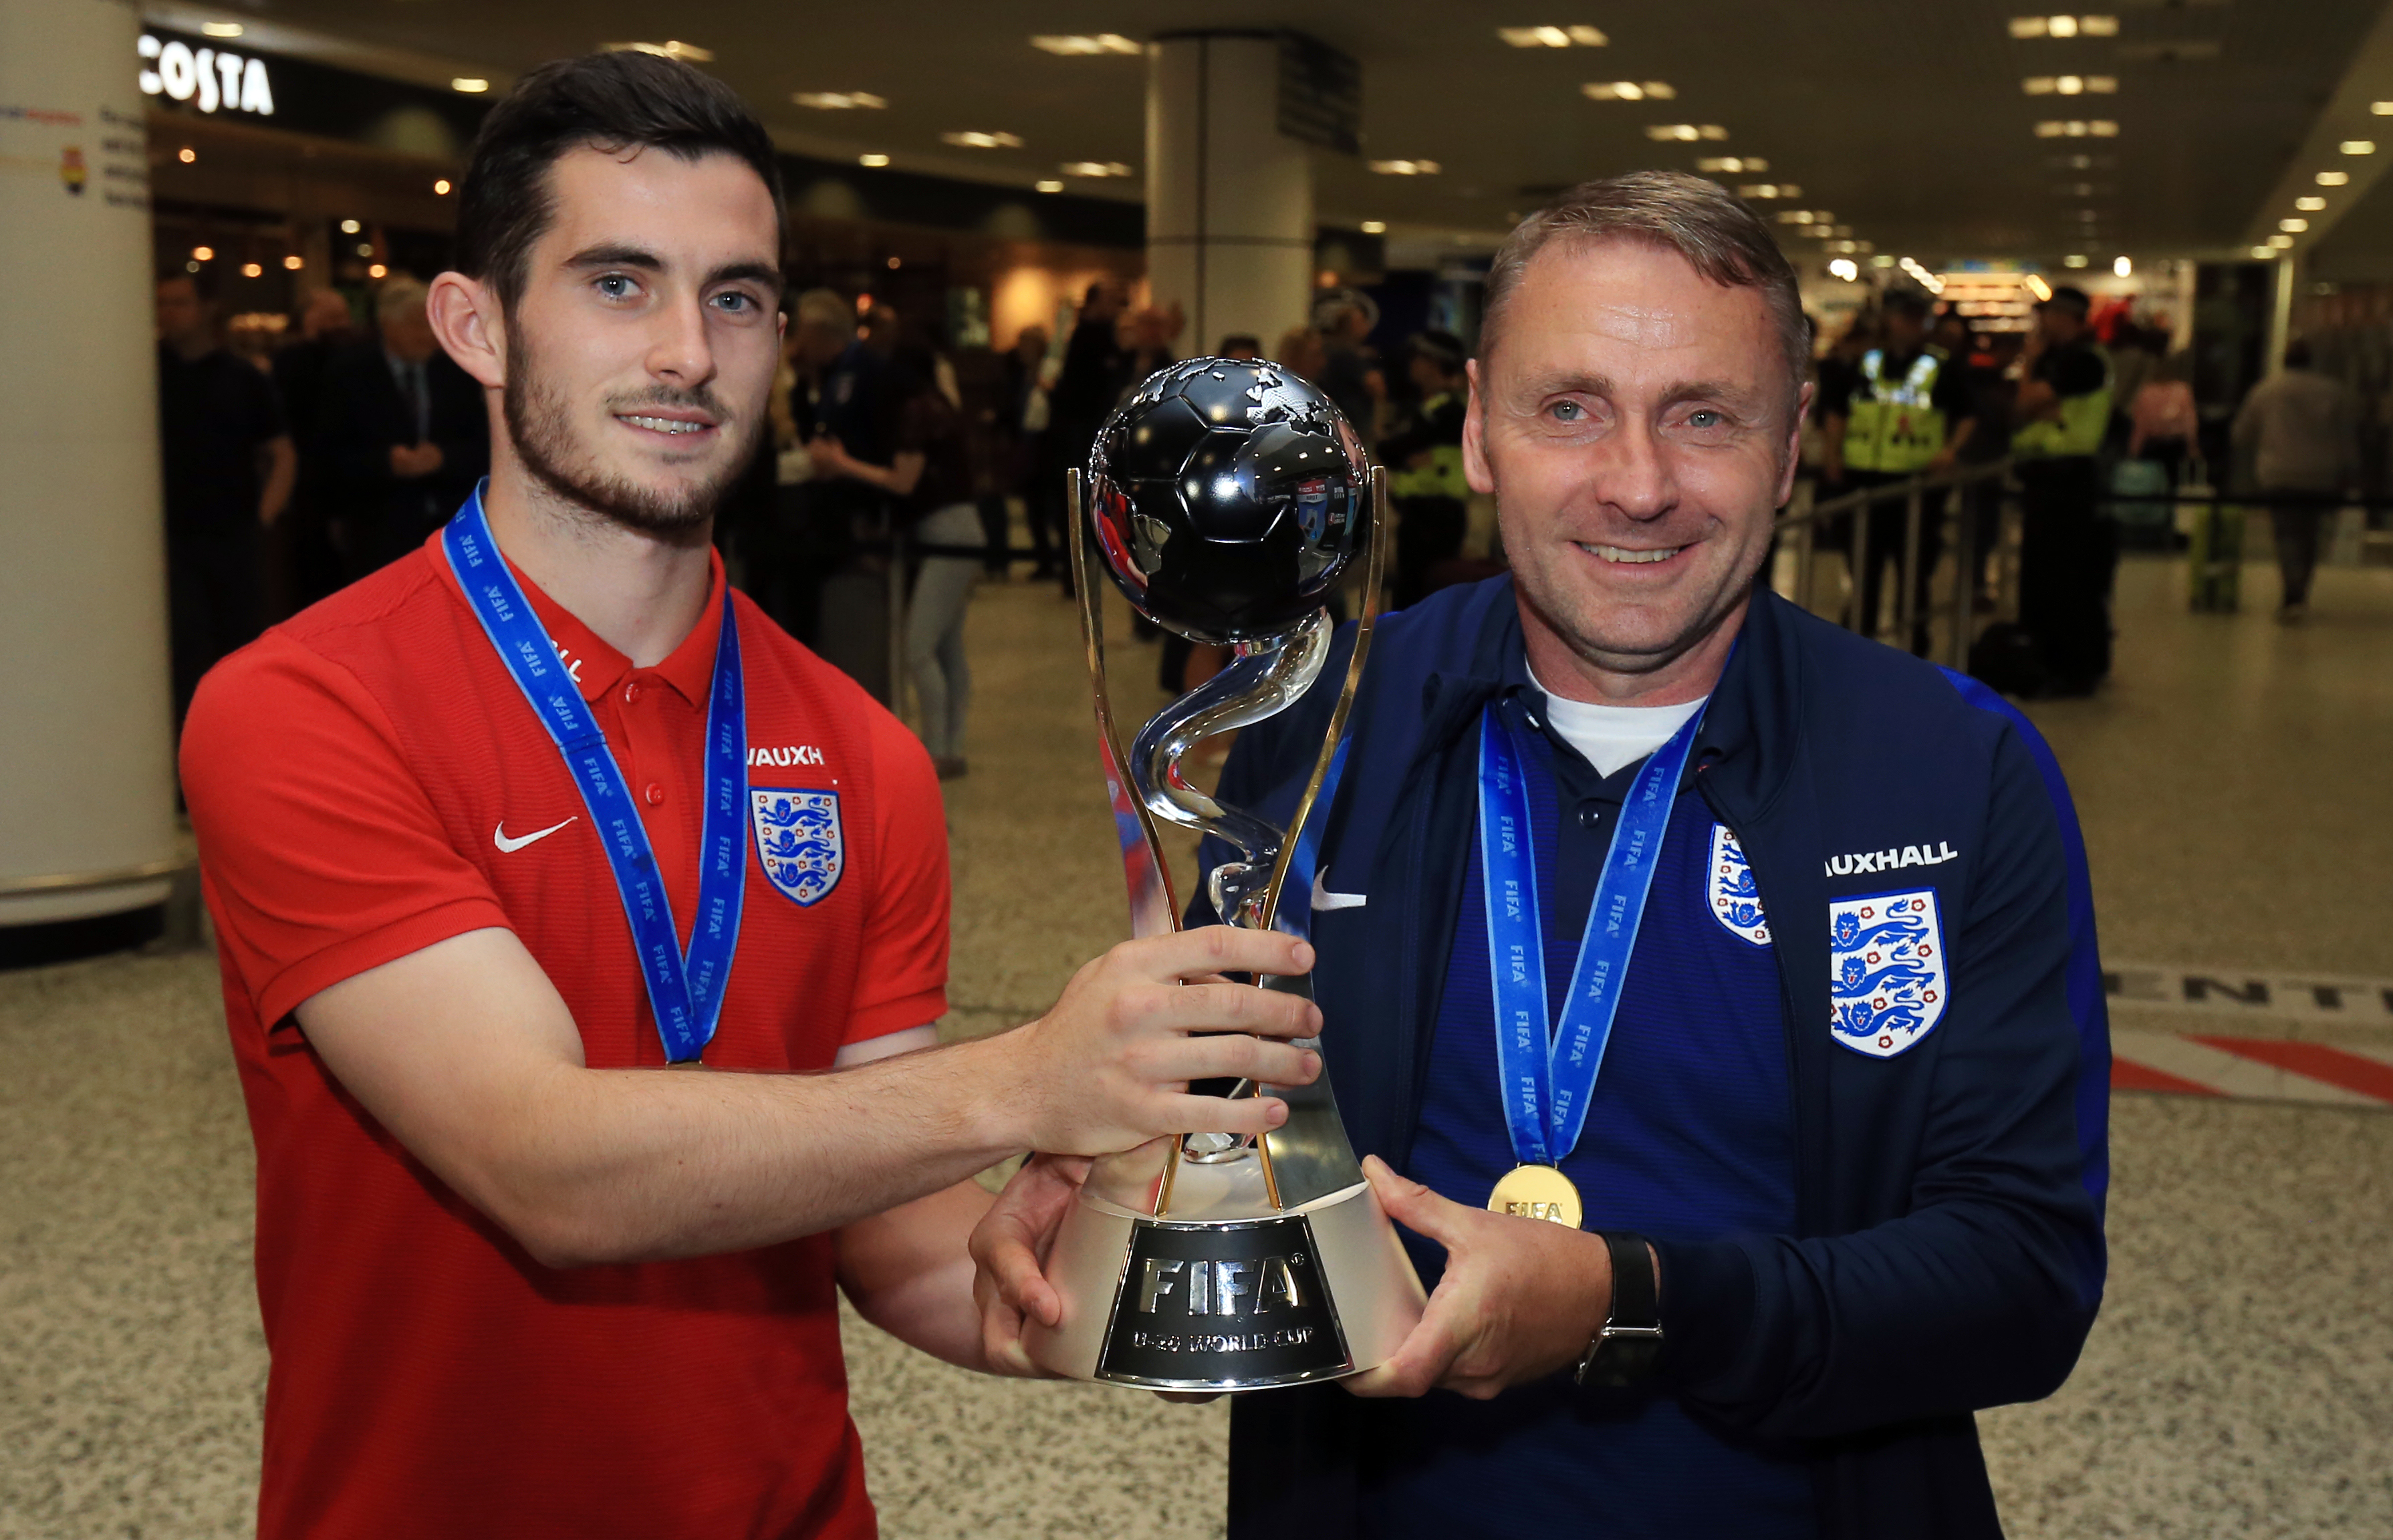 Lewis Cook hold the Under 20s World Cup. His captaincy credentials at a young age could be very important in the future. Image: PA Images